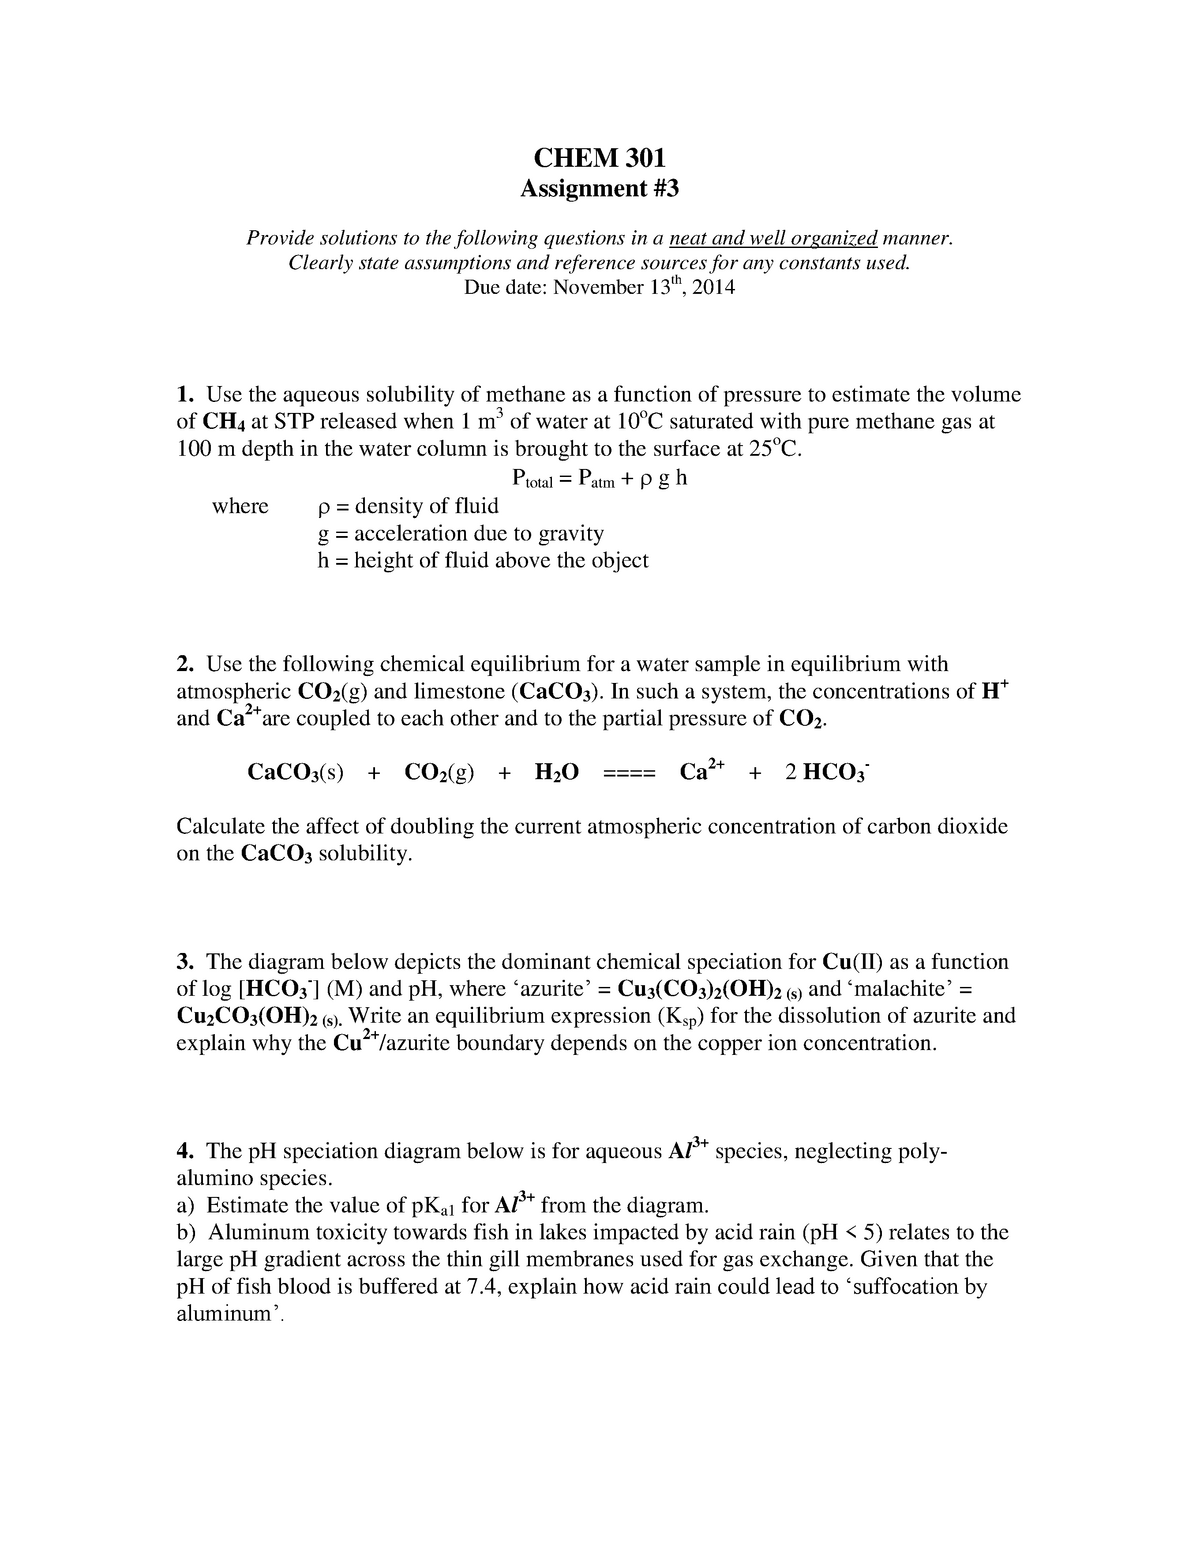 Assign 3 2014 - CHEM301: Aqueous Environmental Chemistry